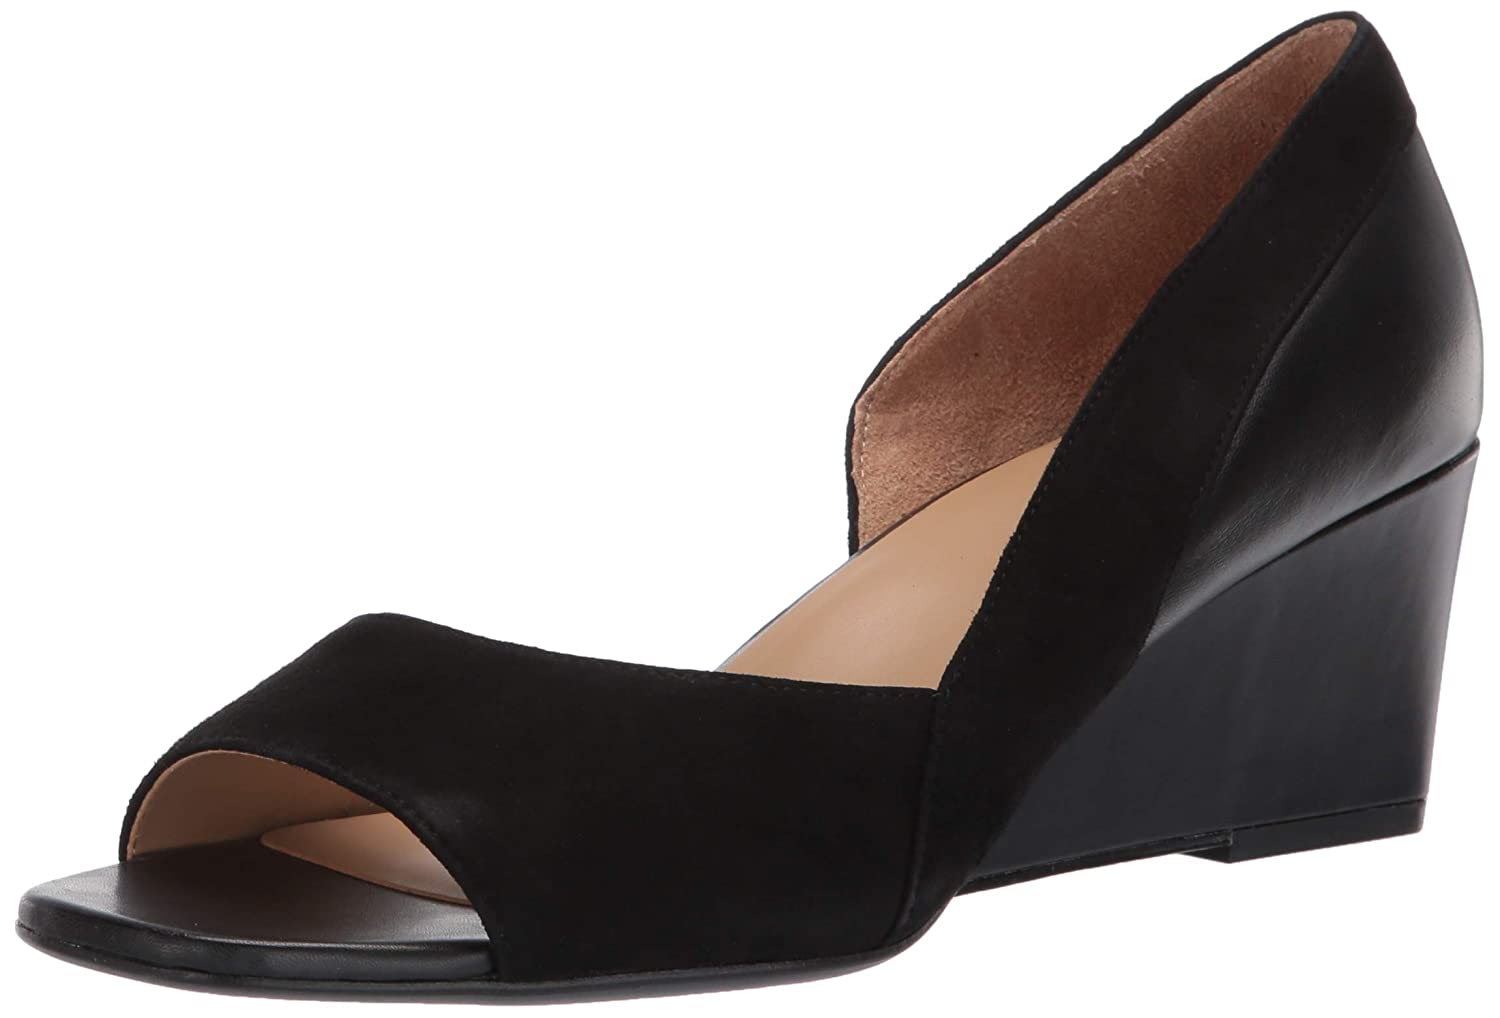 Black Leather Suede Naturalizer Women's Zula shoes